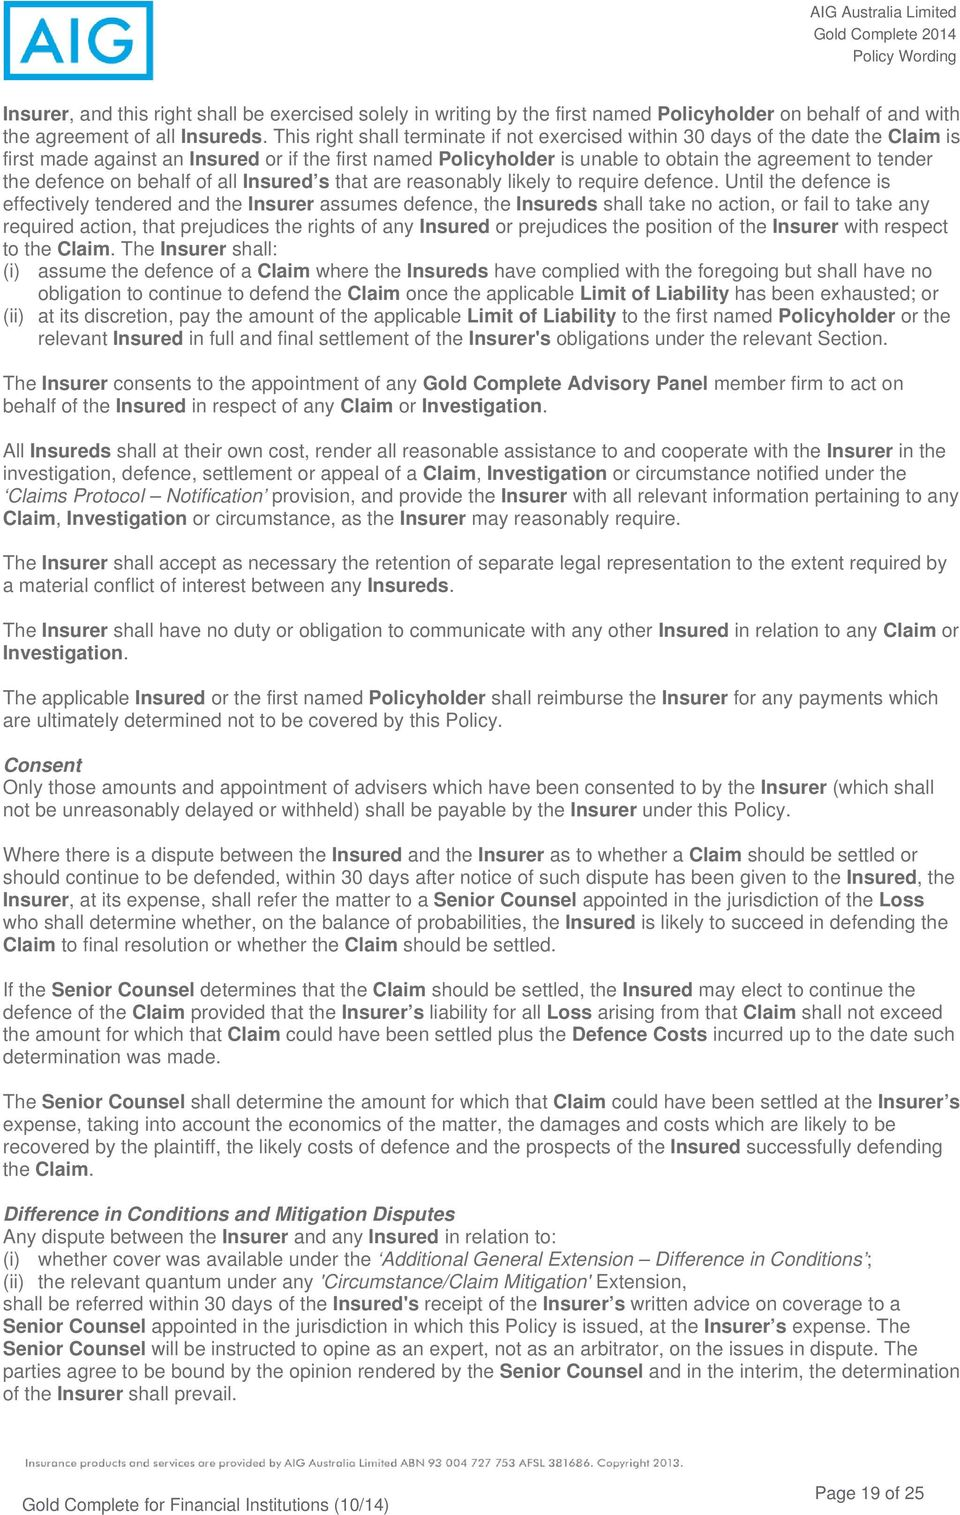 AIG Australia Limited Gold Complete Policy Wording  Policy